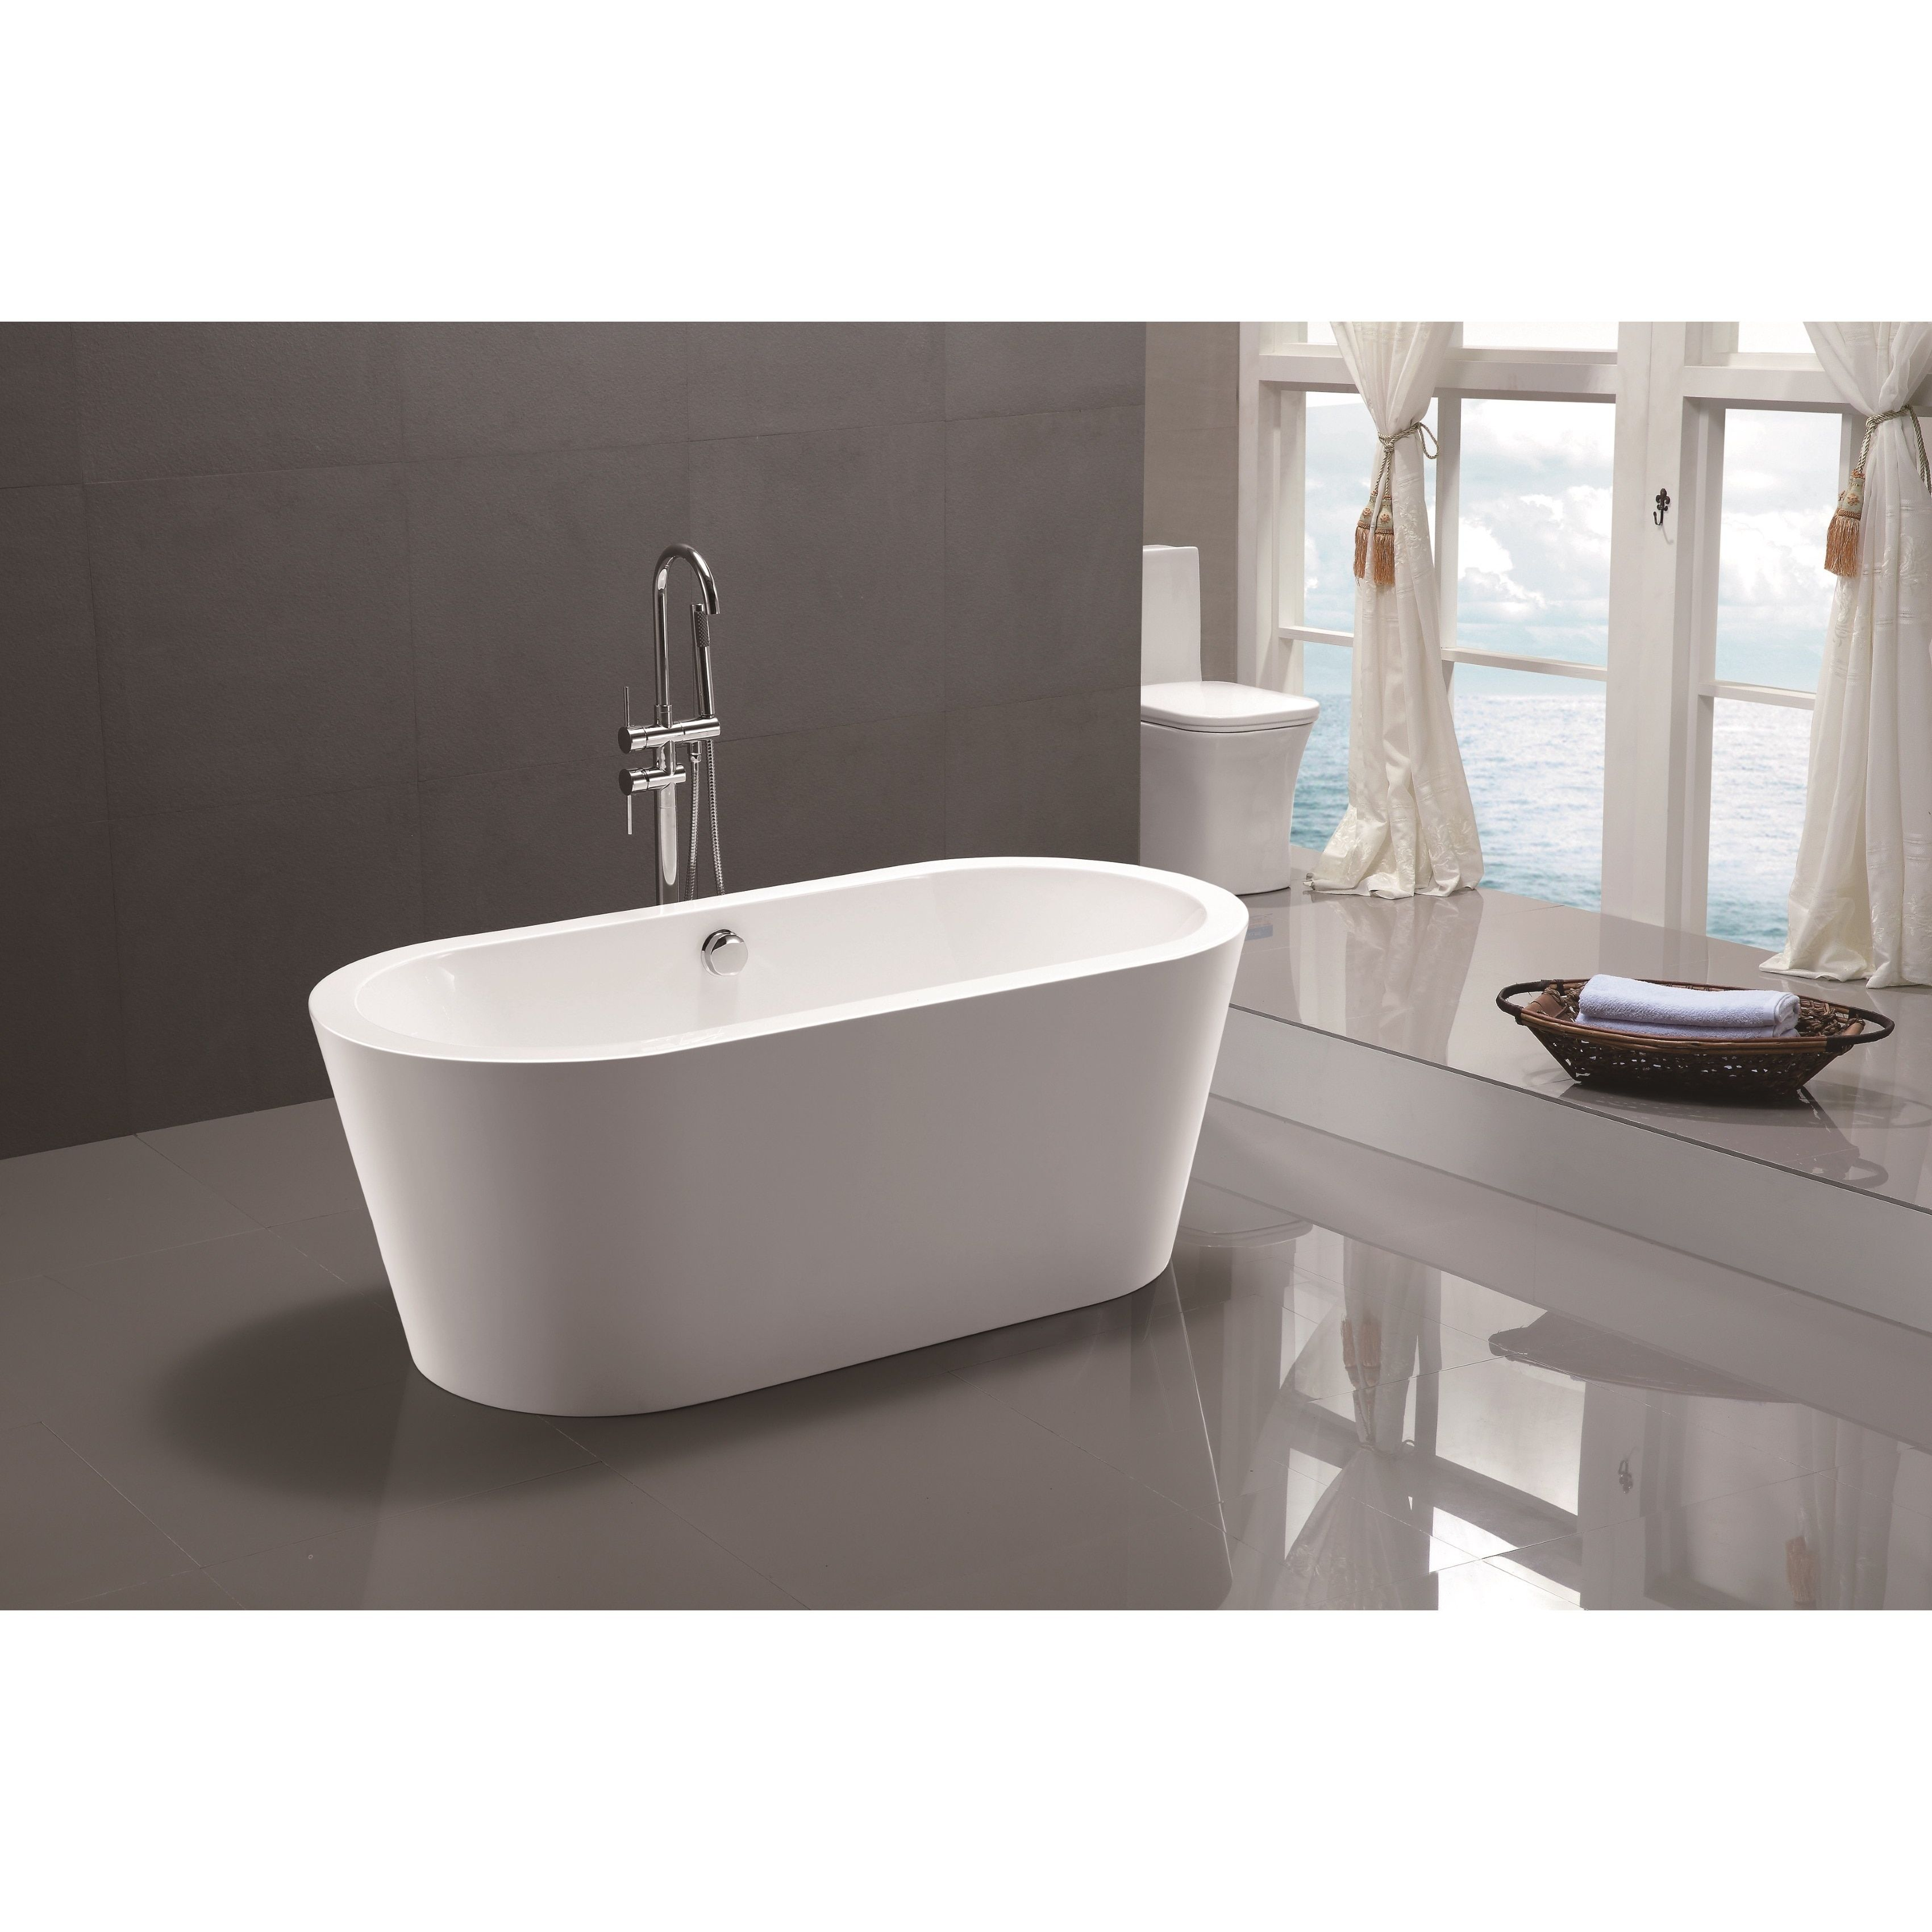 Oval Soaking Tubs: Add a relaxing new element to your daily routine with a soaking tub. Free Shipping on orders over $45!